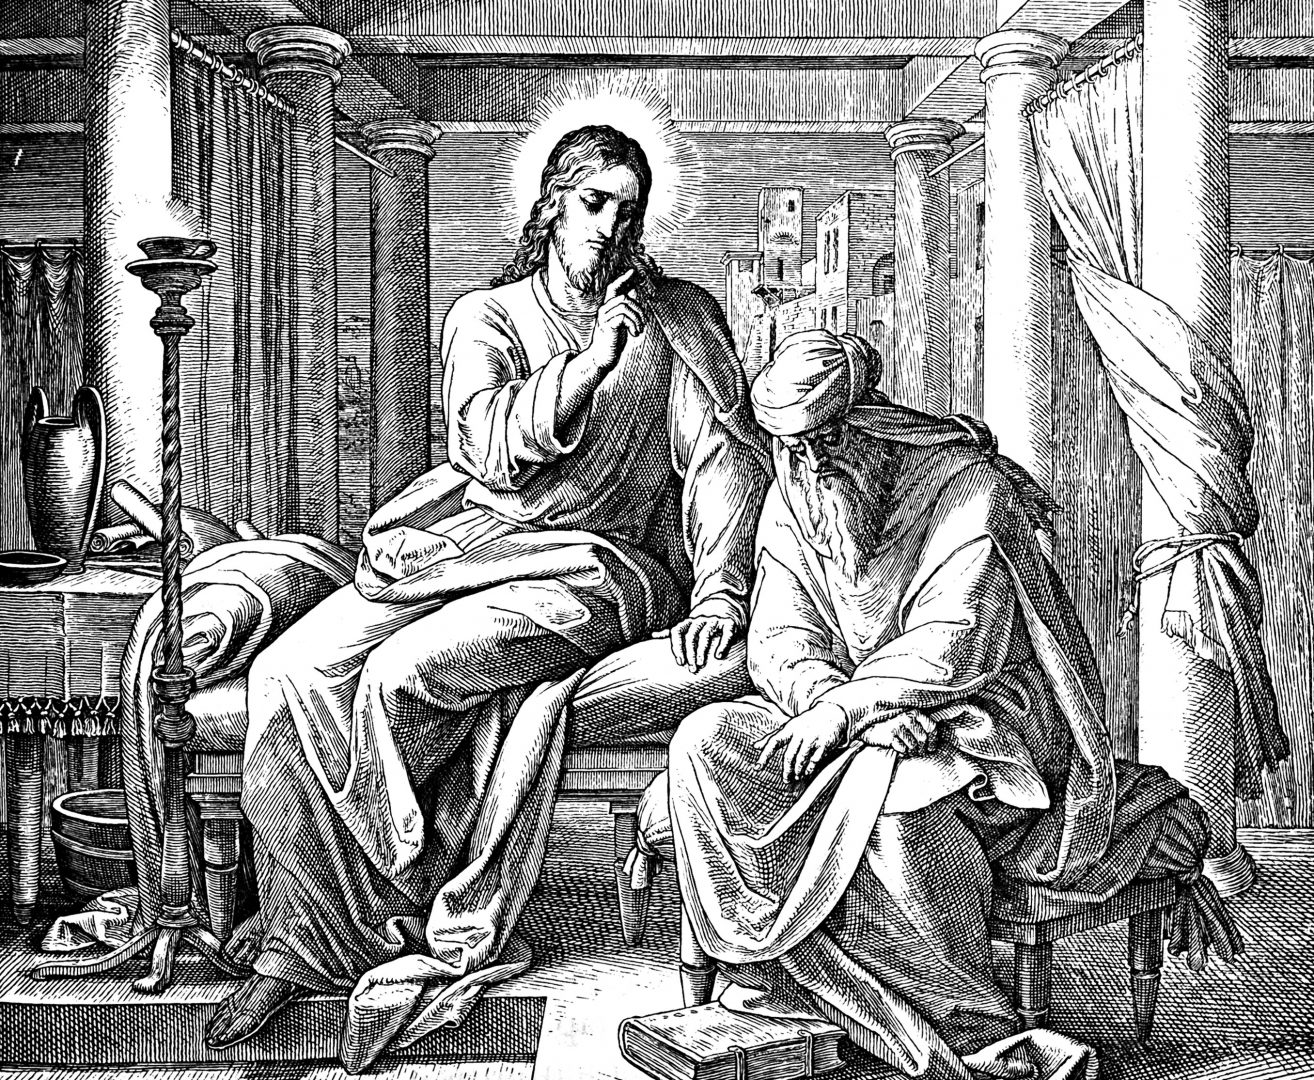 Jesus sitting with Nicodemus at night